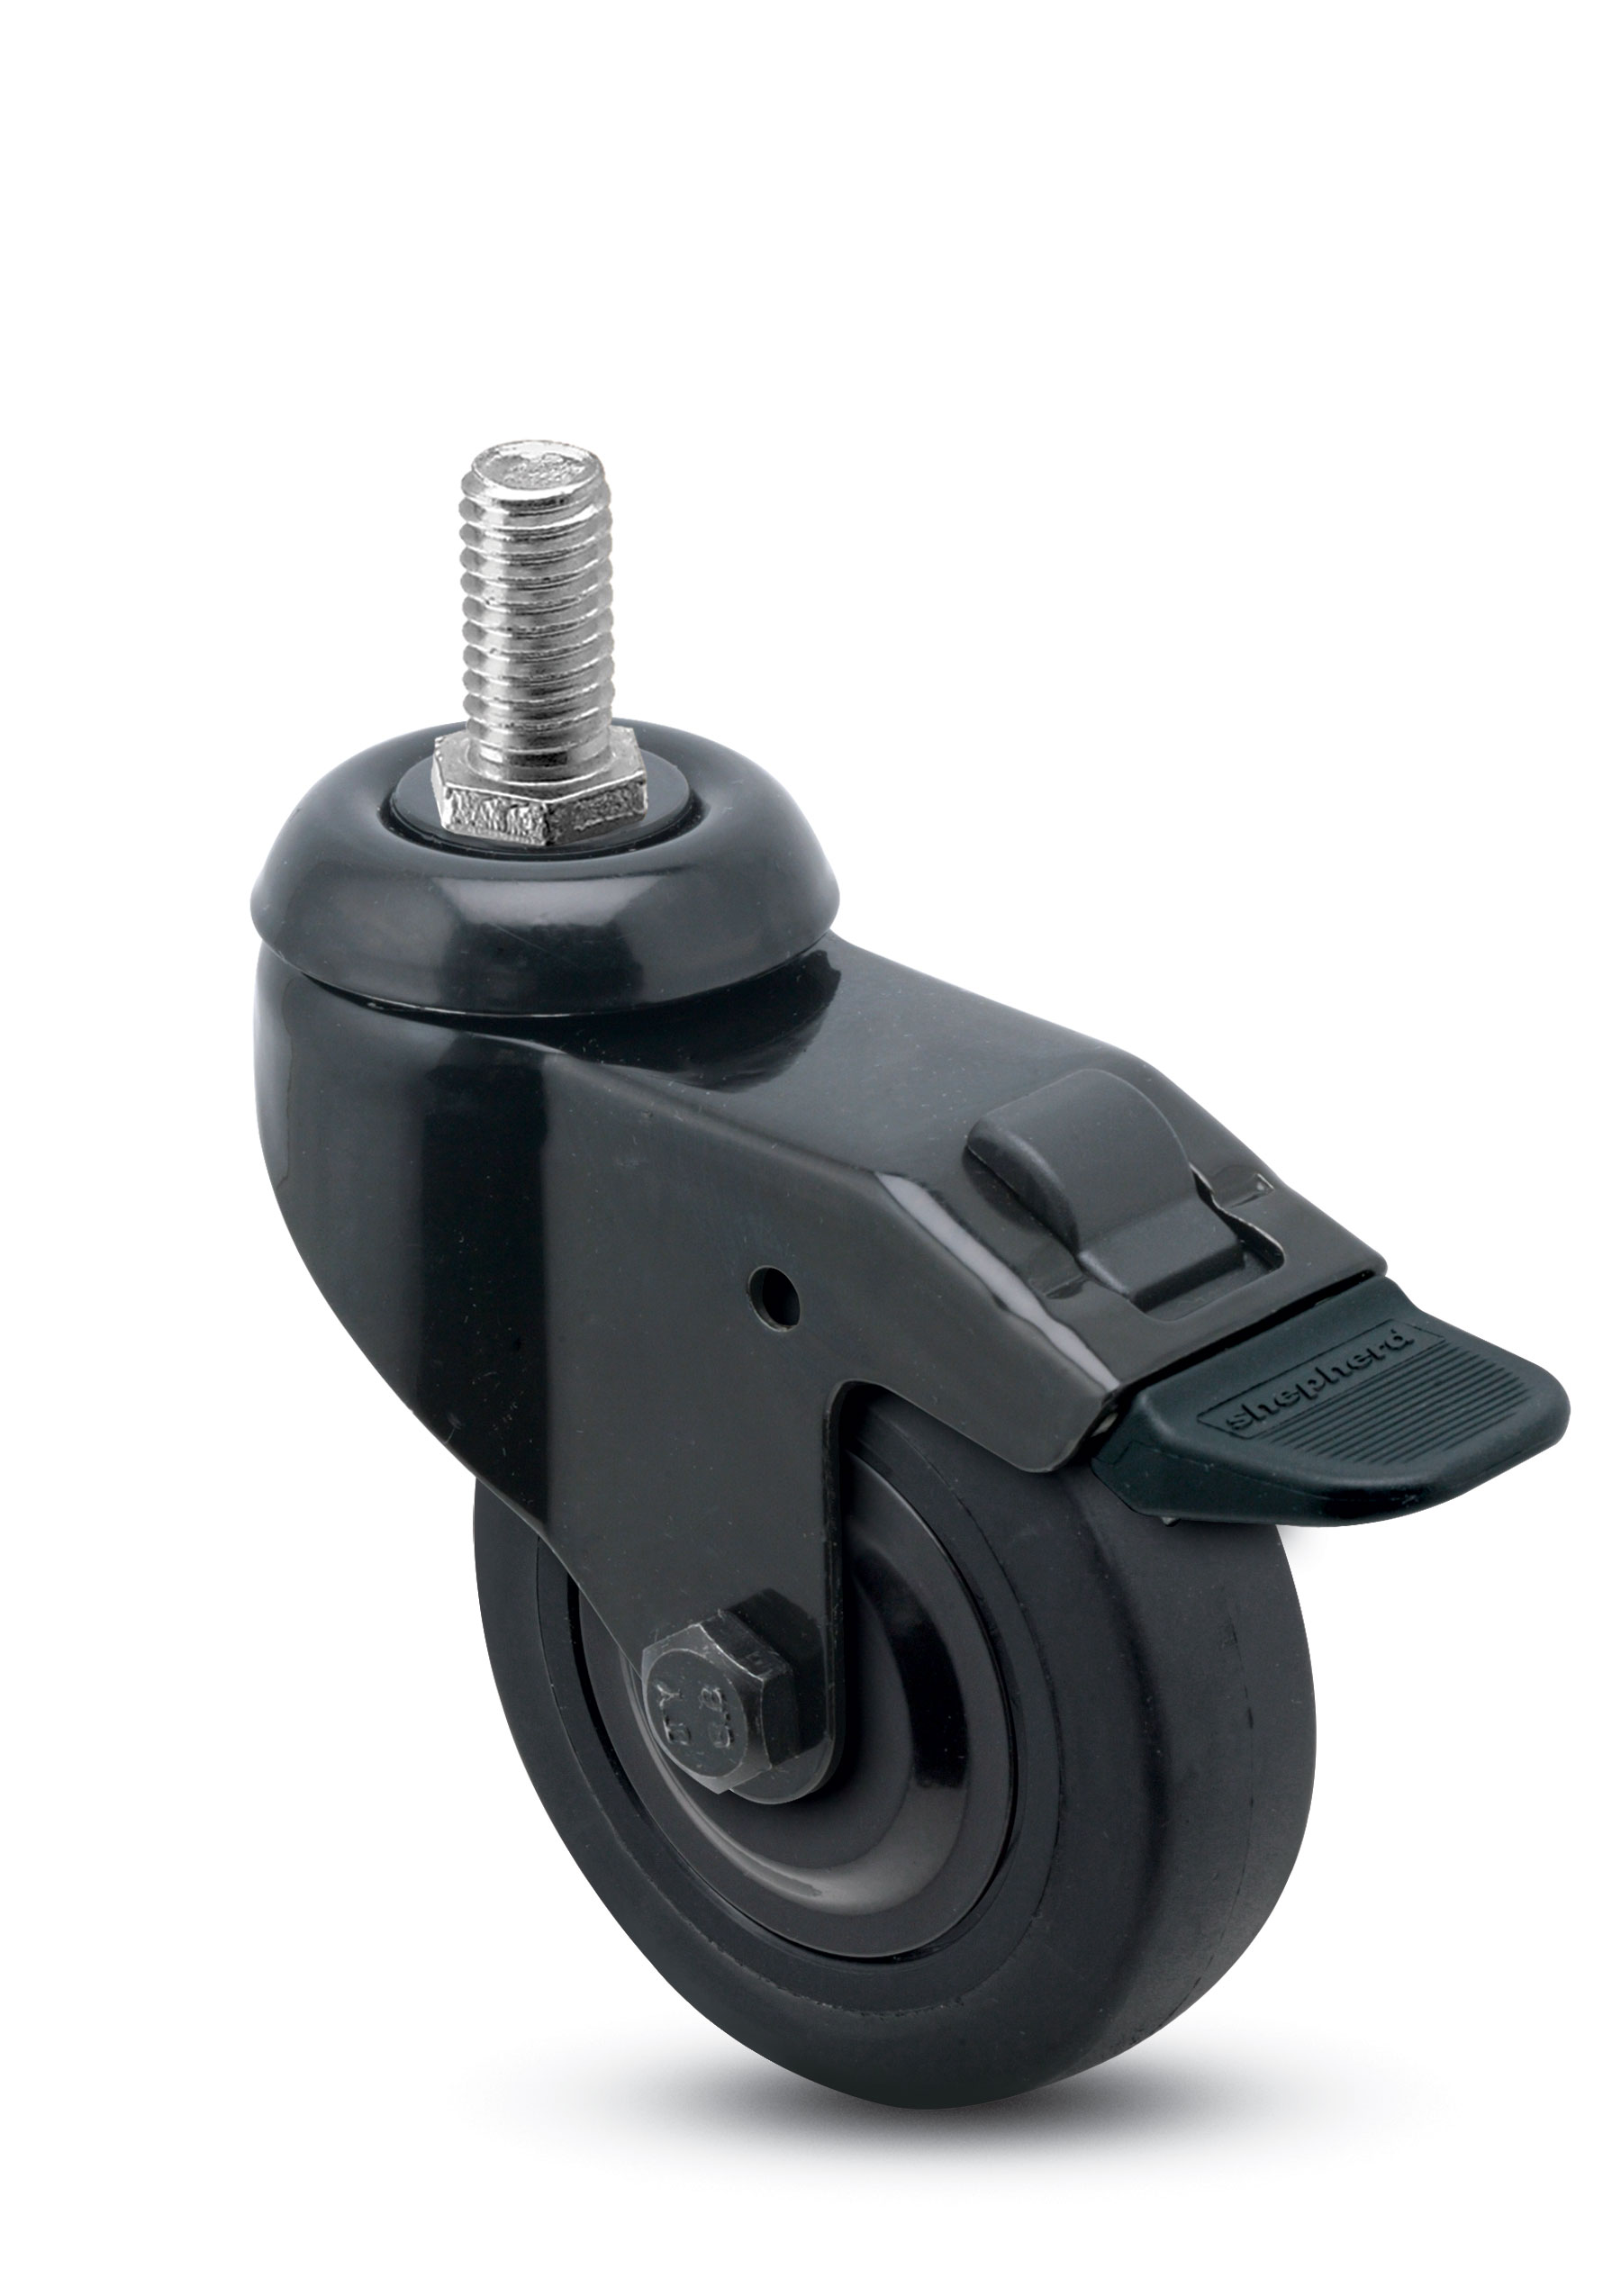 chair casters threaded stem godrej revolving catalogue 3 x 13 16 swivel caster with a thermoplastized rubber